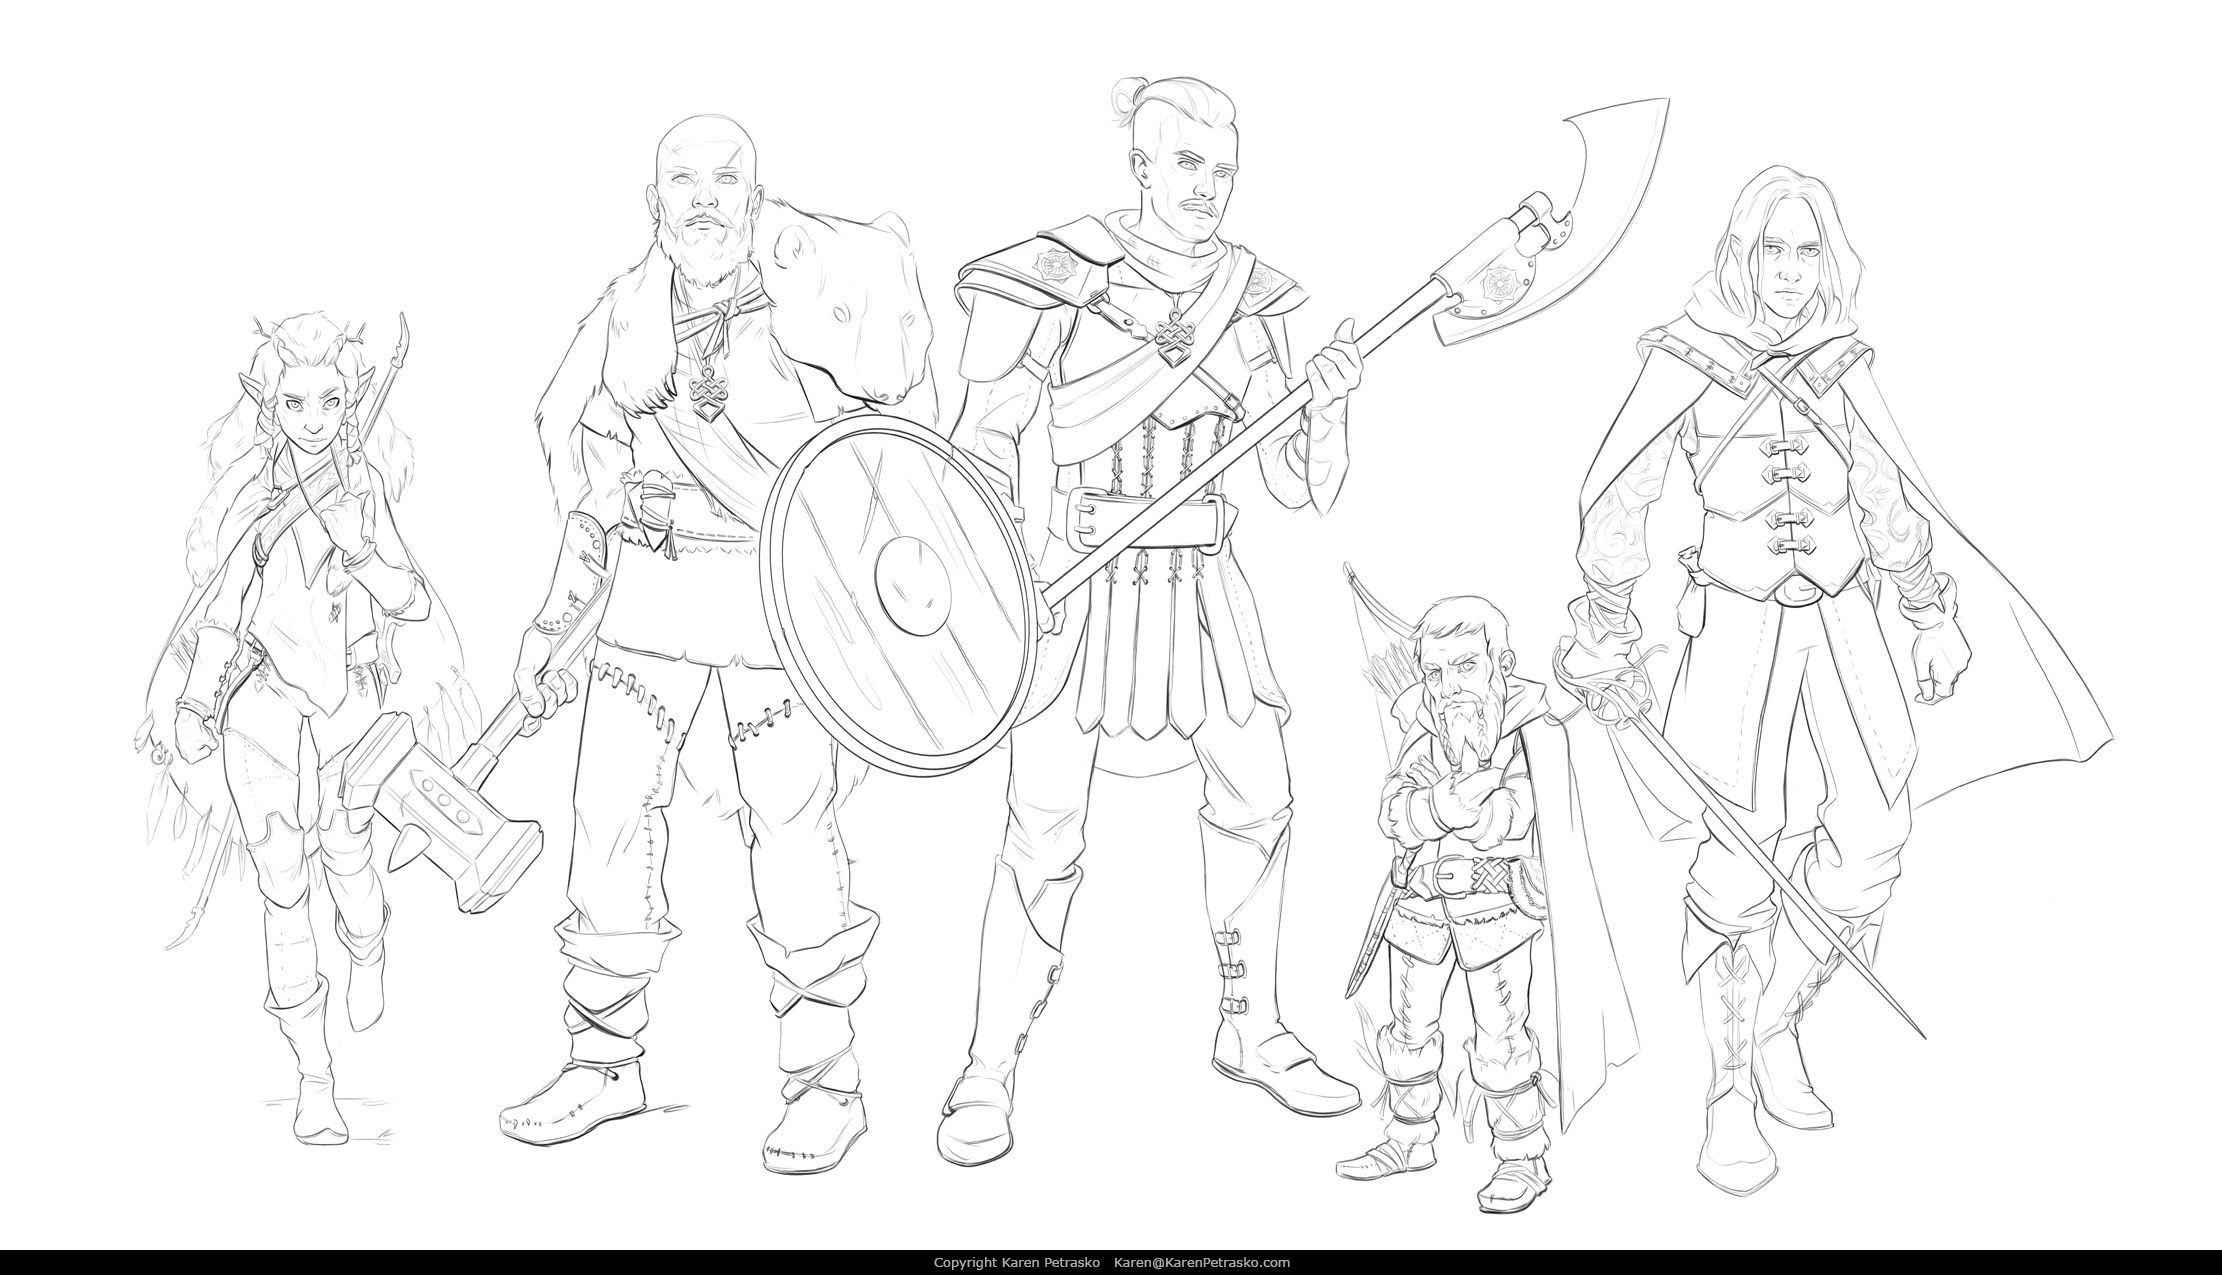 D&D Wood Elf Druid, Human Barbarian, Human Paladin, Halfling Ranger, and Half Drow Rogue